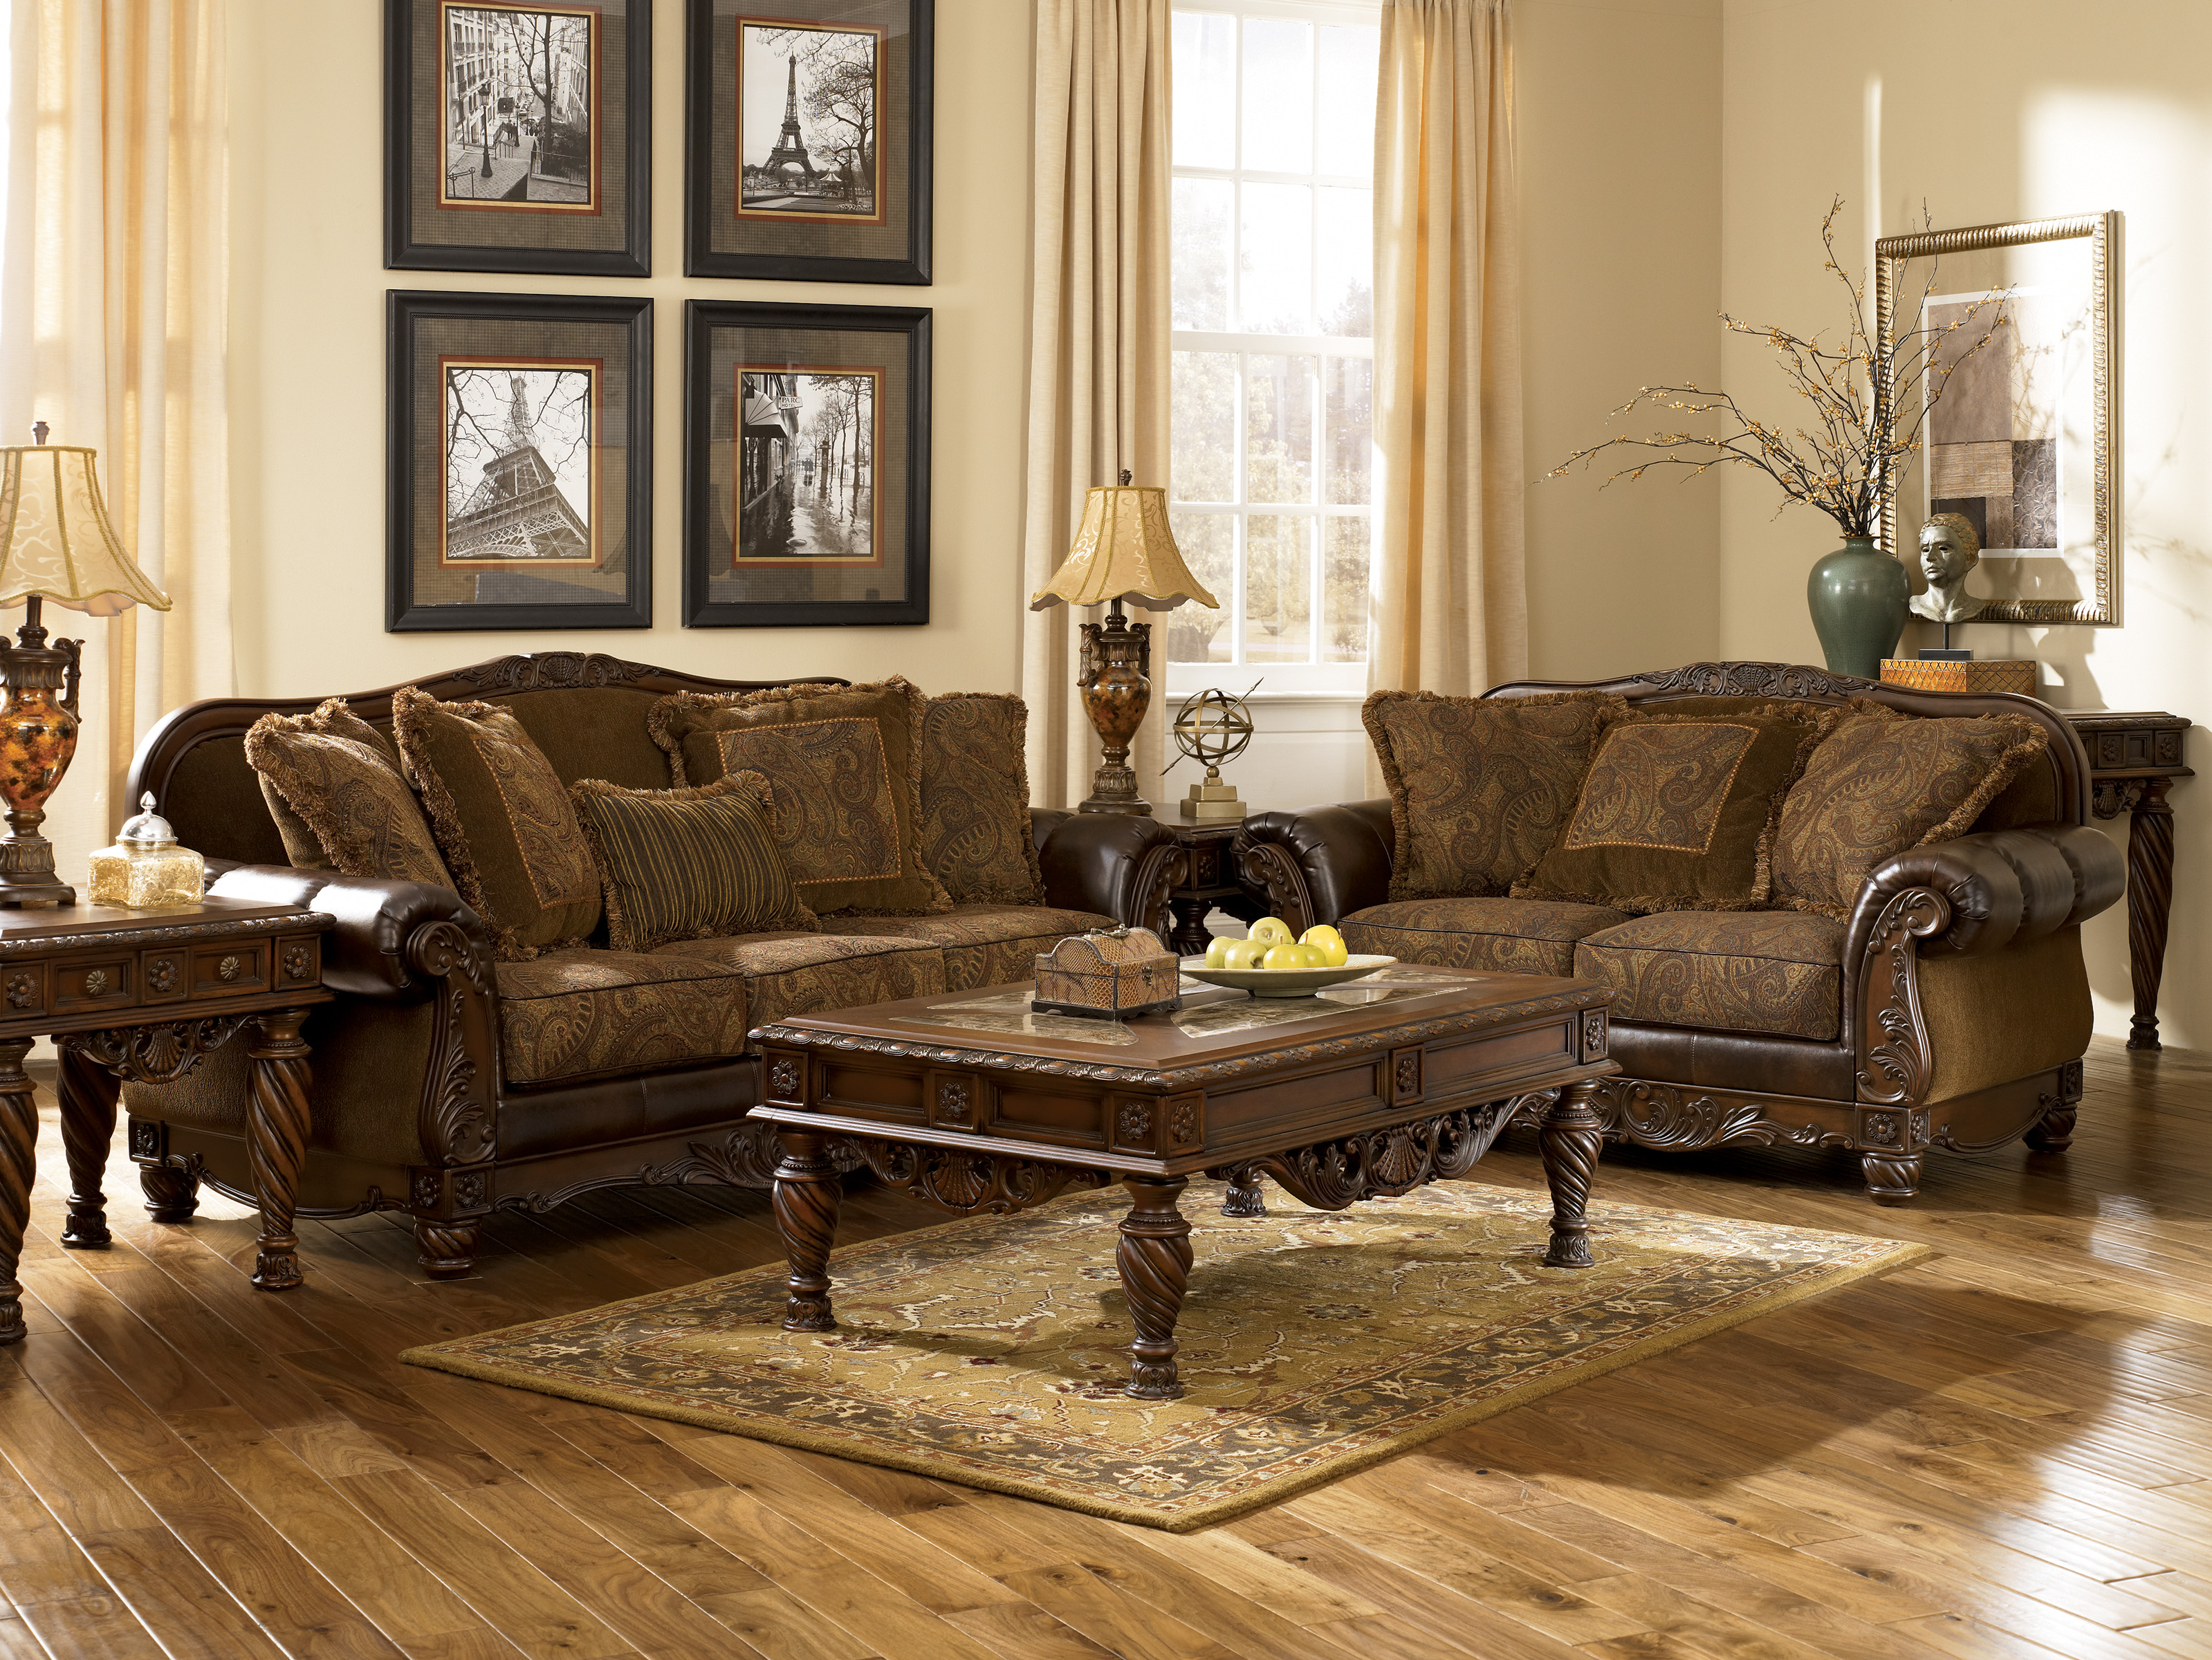 Ashley furniture fresco 63100 durablend antique living for Living room furniture collections